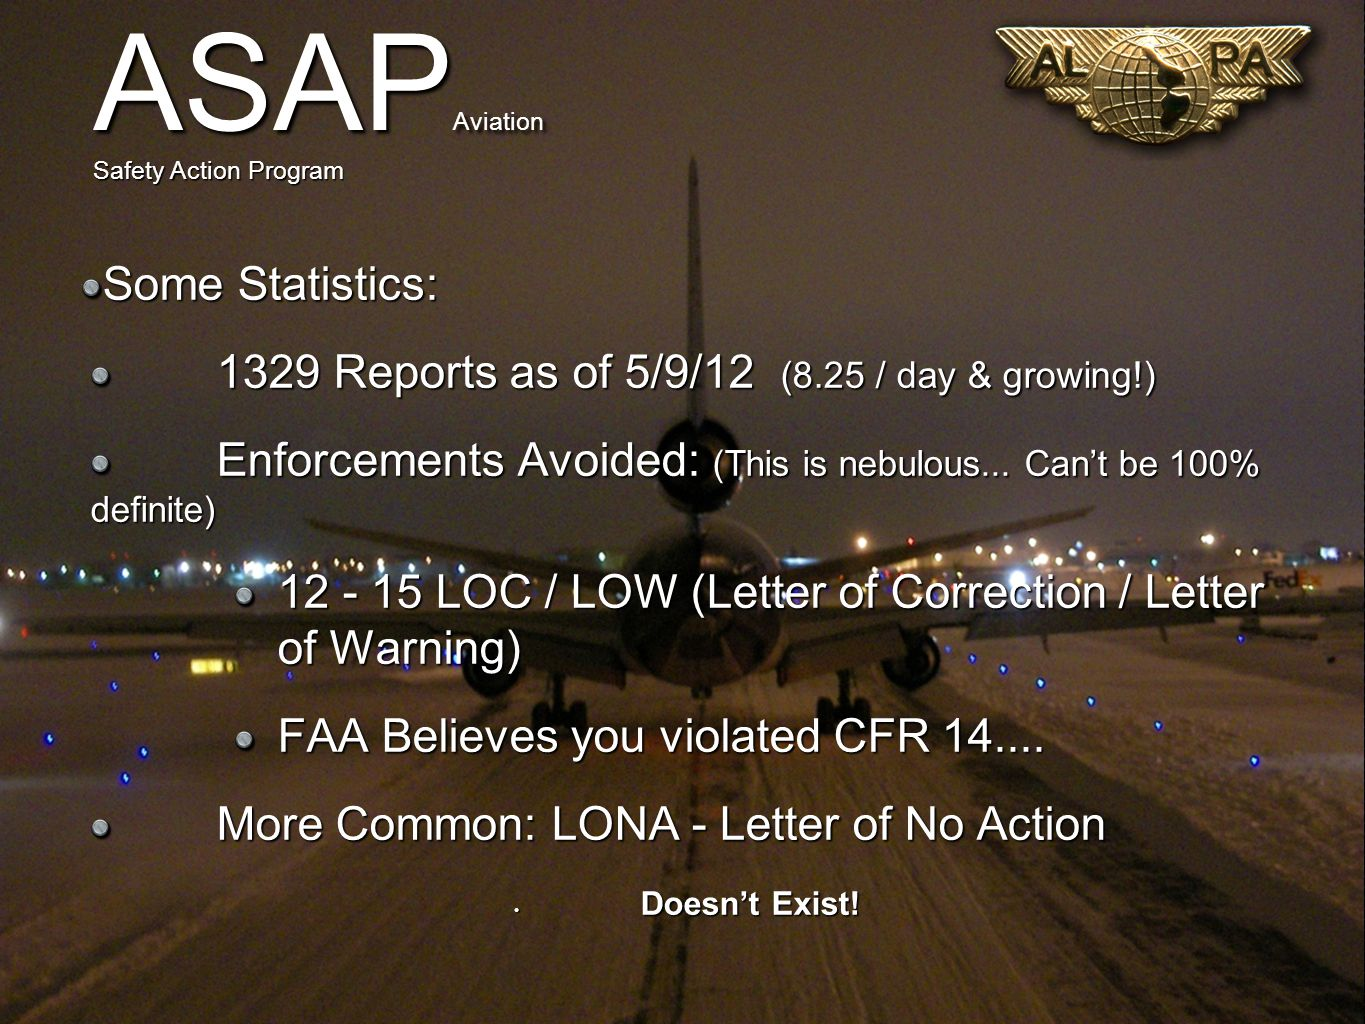 Some Statistics: 1329 Reports as of 5/9/12 (8.25 / day & growing!) Enforcements Avoided: (This is nebulous...